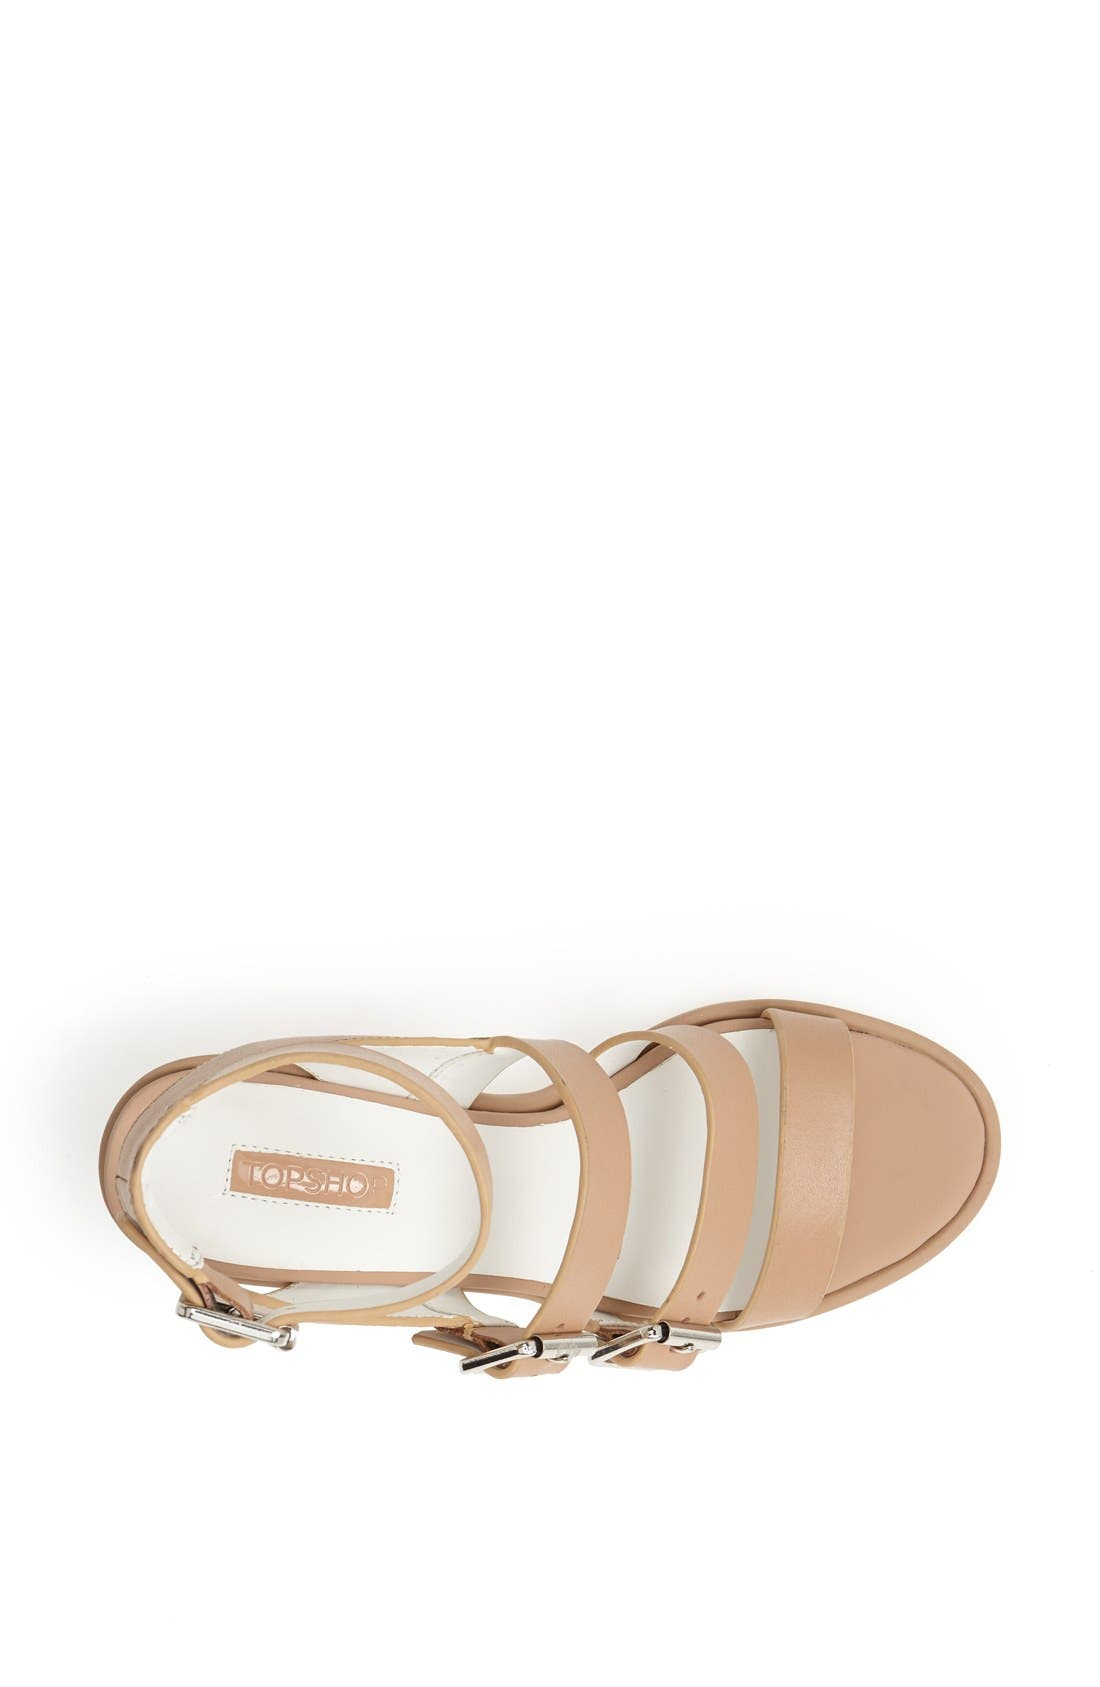 Alternate Image 3  - Topshop 'Nowhere' Mid Heel Sandal